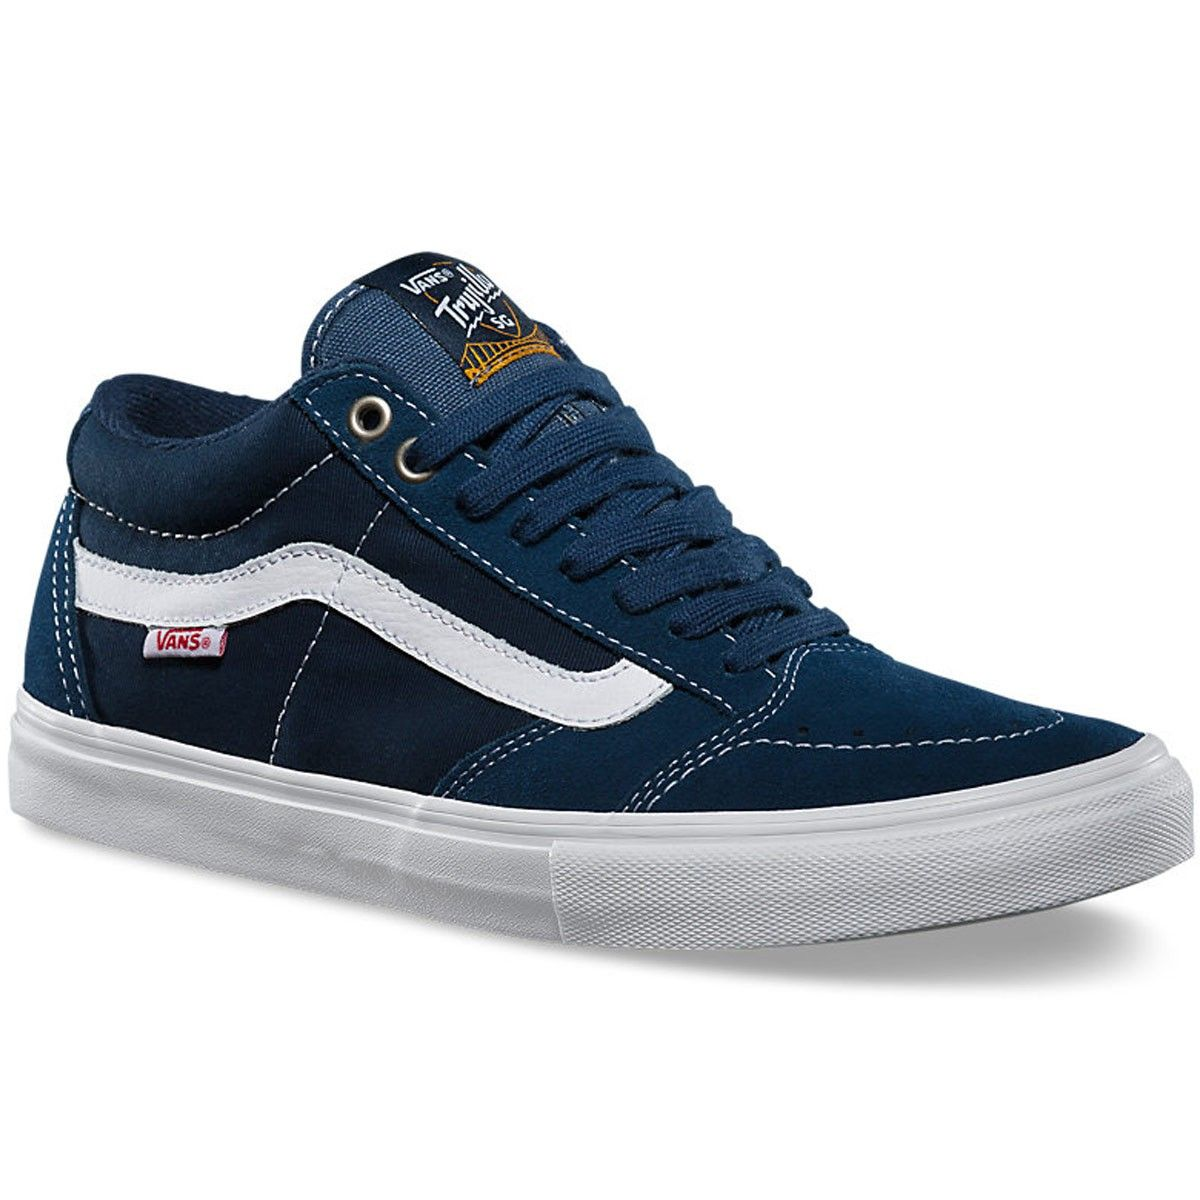 f88fa33fcada51 Vans TNT SG Washed Canvas Shoes - Navy White - Men s 8.0